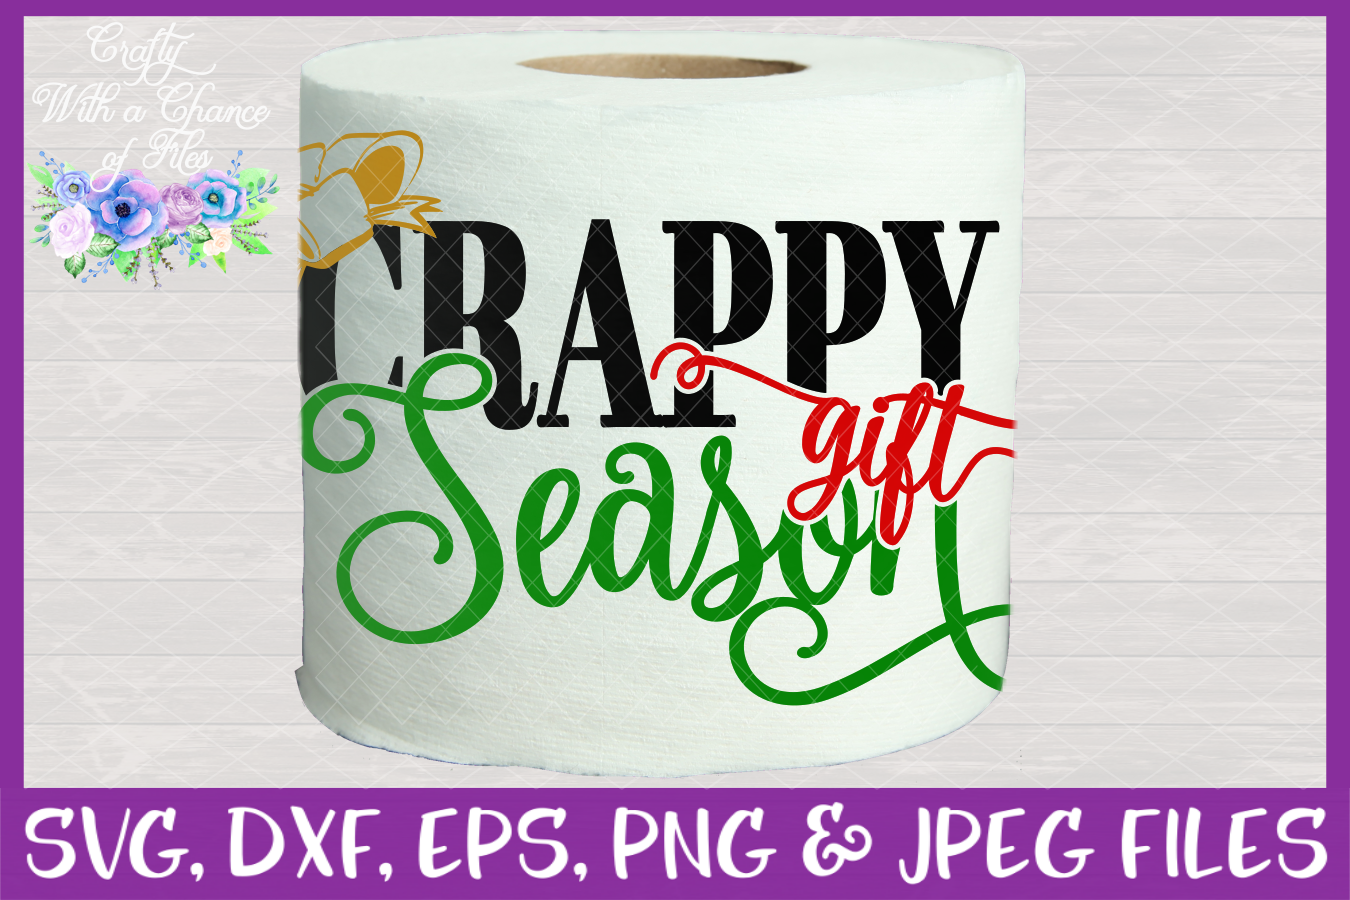 Crappy Gift Season SVG - Christmas Toilet Paper Design example image 2